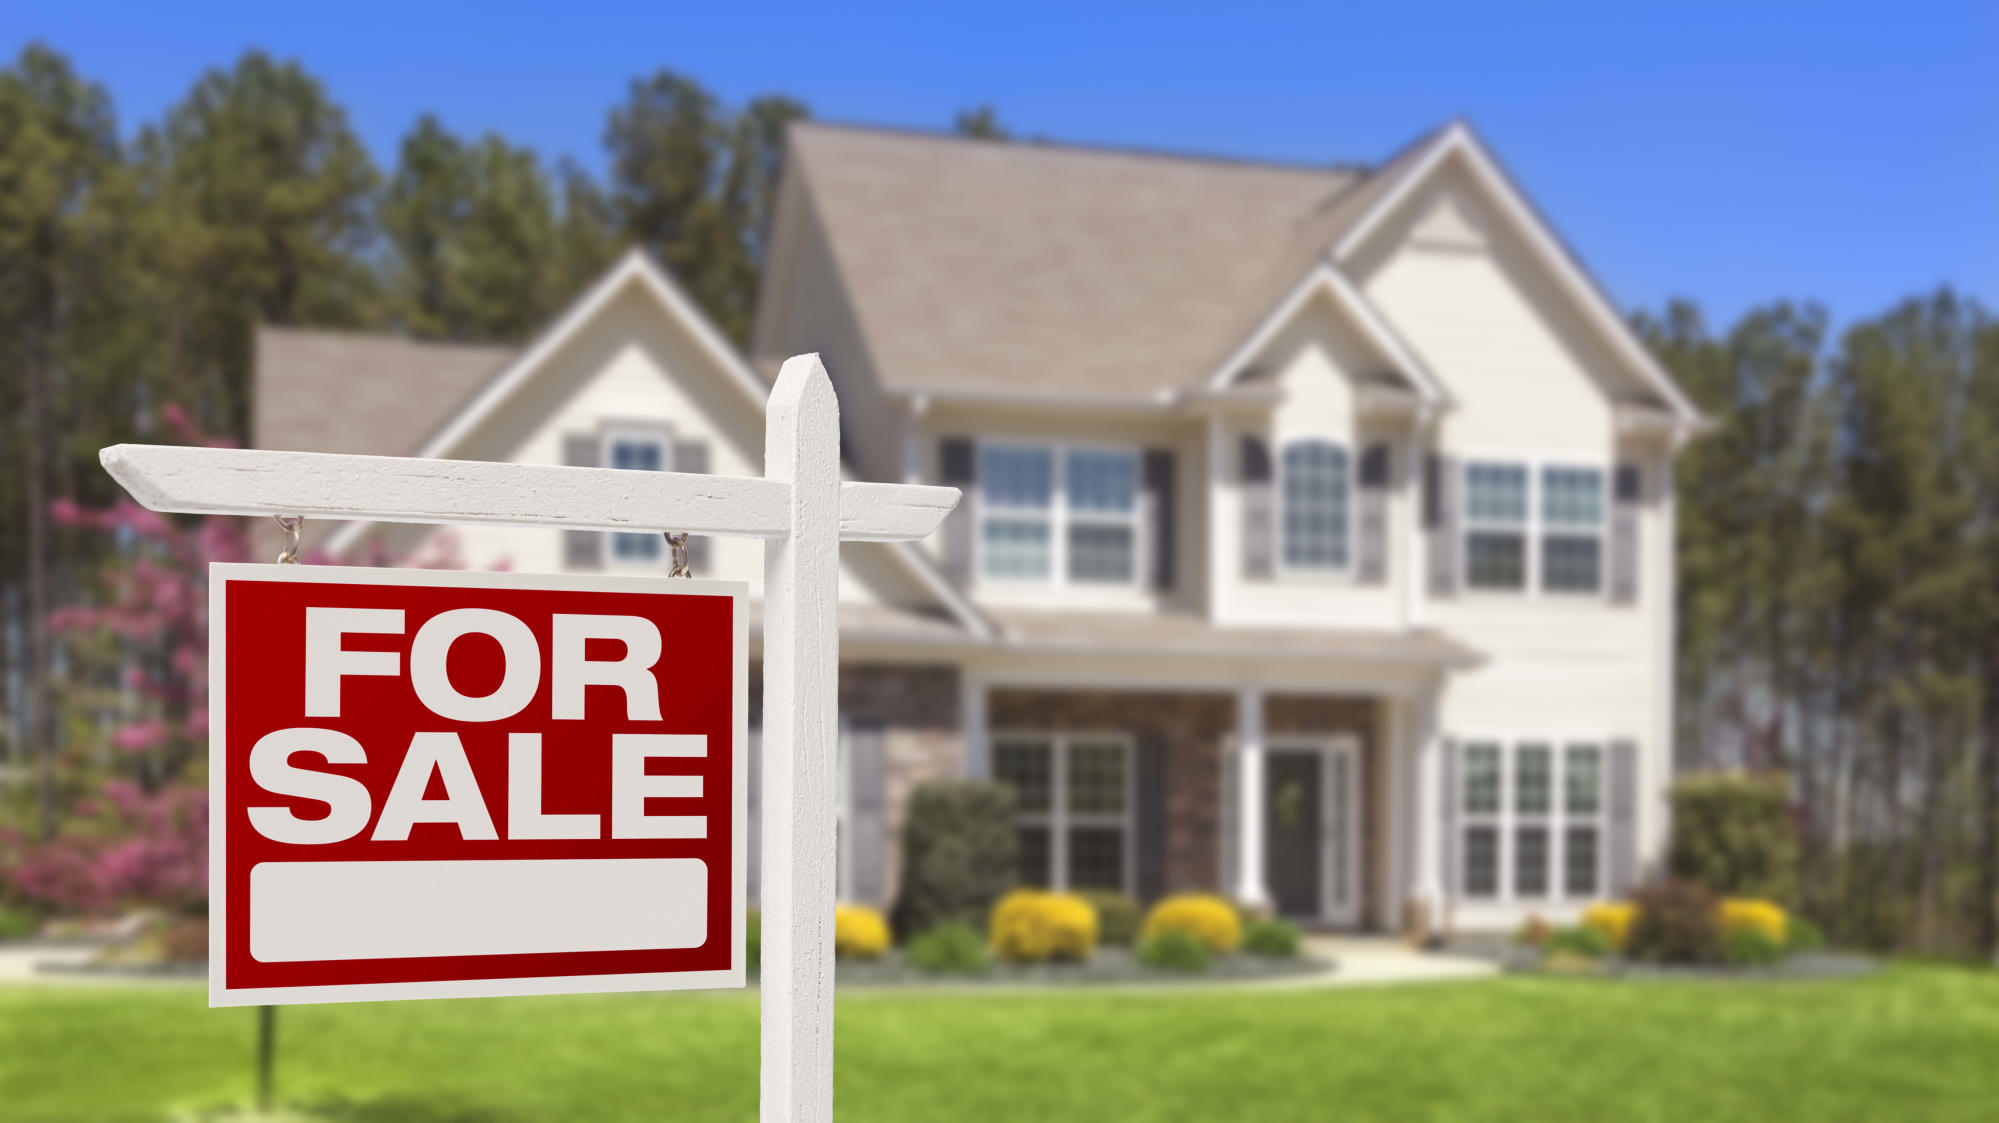 Home sellers try to capitalize on housing market and crypto